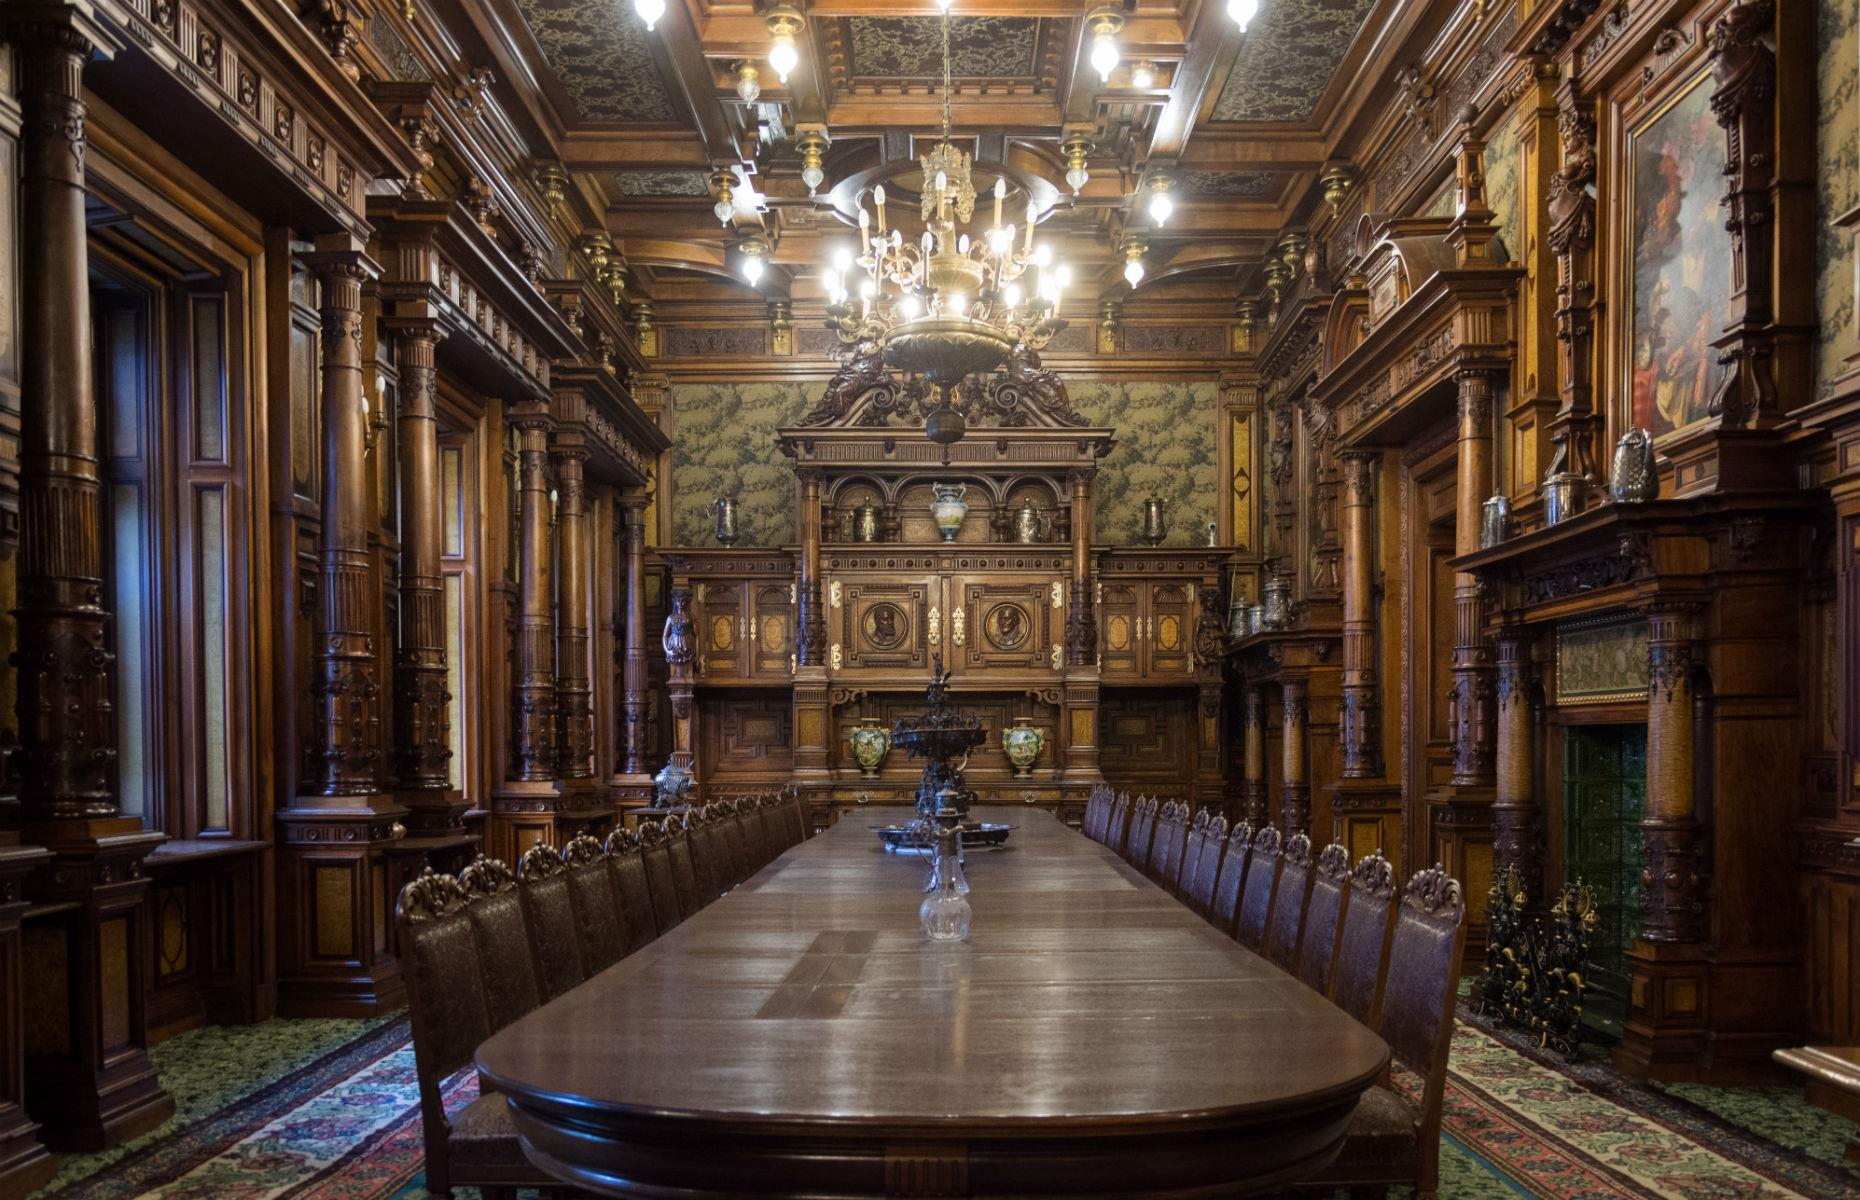 Slide 43 of 61: There are over 170 rooms, brimming with furniture and intricate details. Some have even been decorated to reflect different cultures, from the Florentine Room to the colorful Turkish Parlor. Pictured here is the magnificent, wood-paneled dining room.